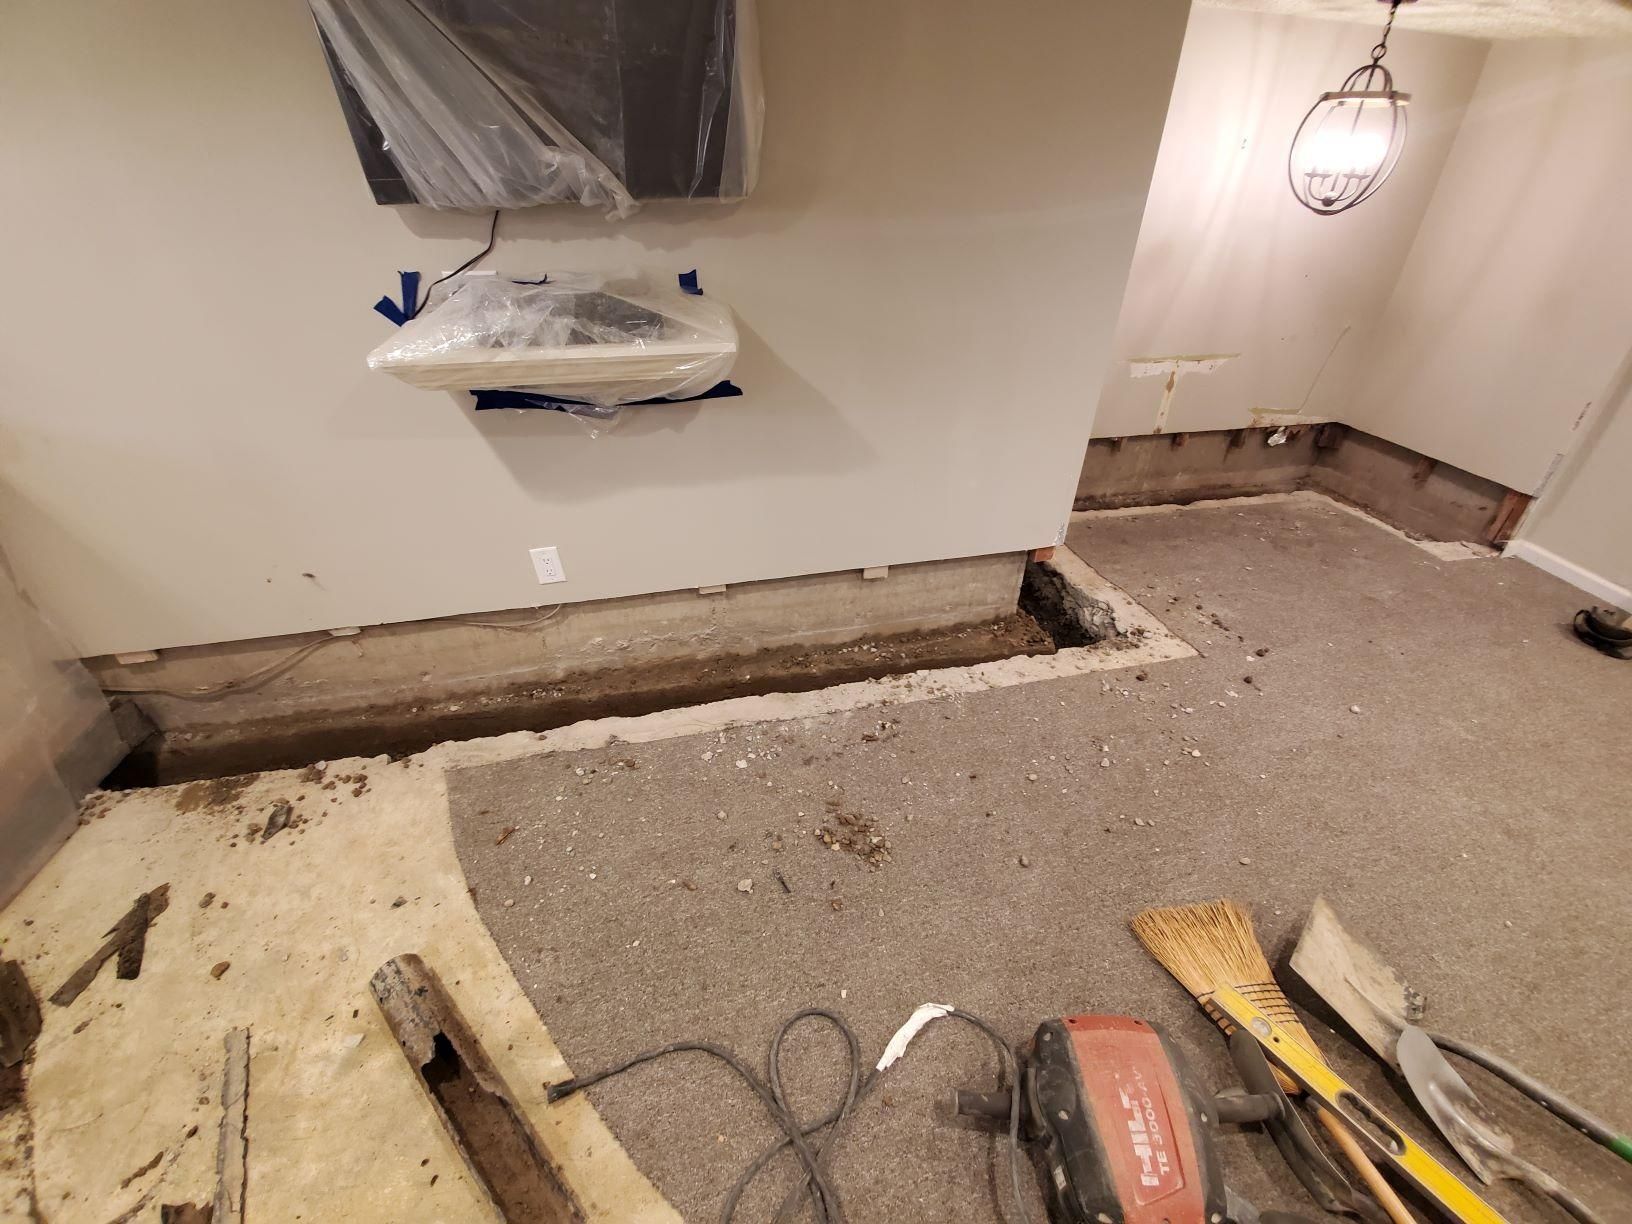 Waterproofing a Finished Basement With Our Patented FlowGuard System And a Gravity Discharge - Goshen, NY - Before Photo